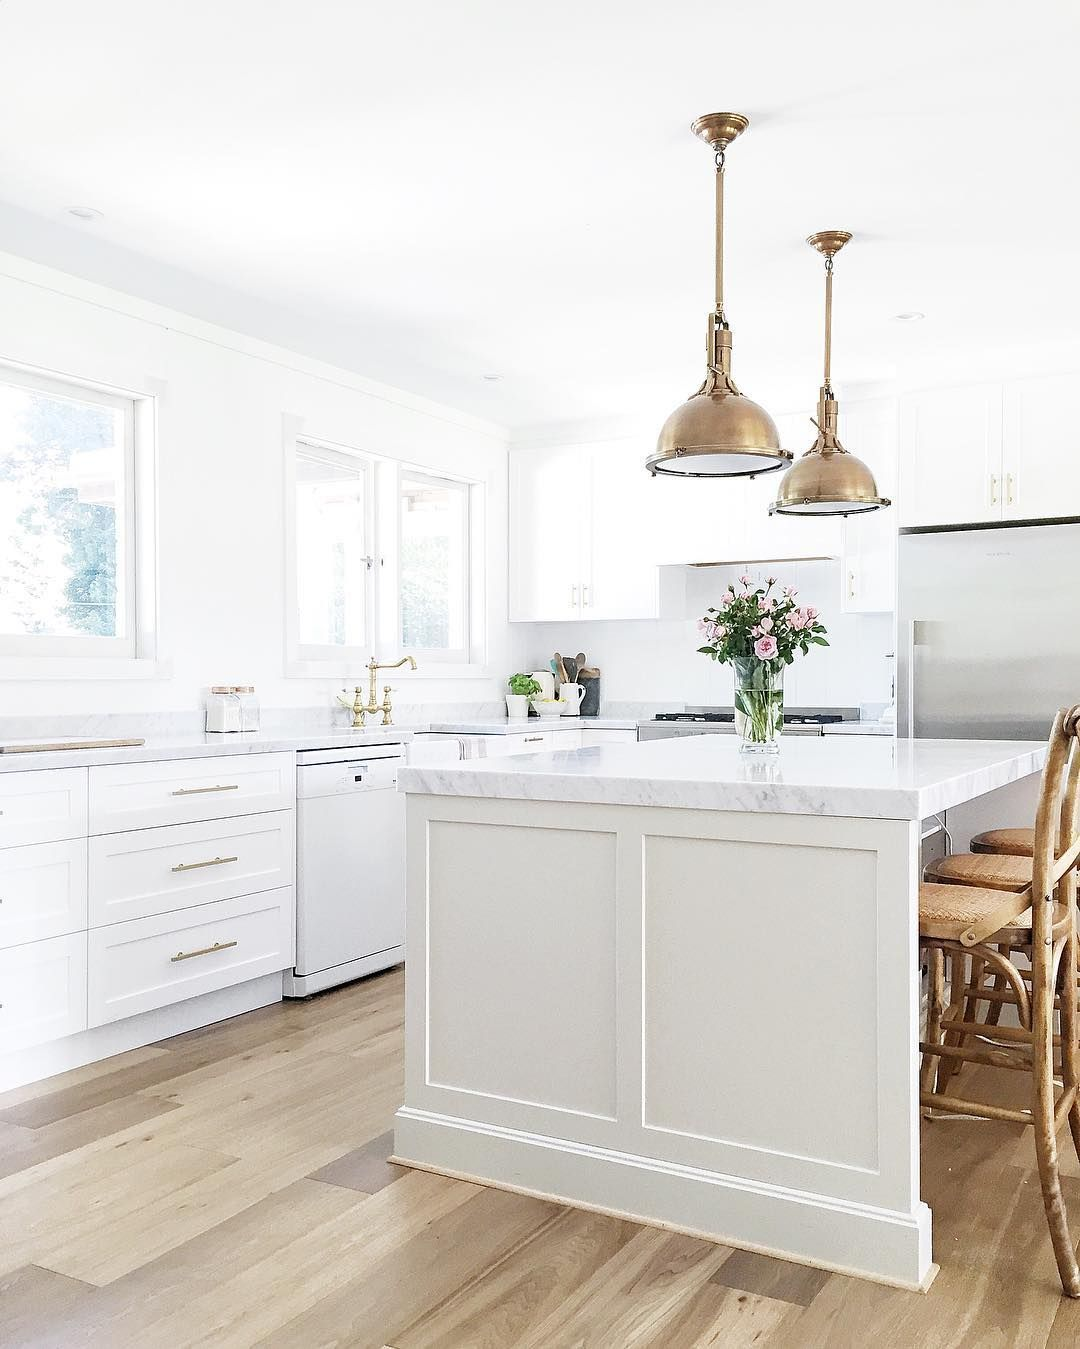 Modern farmhouse kitchen island in dulux upale tendrilu and